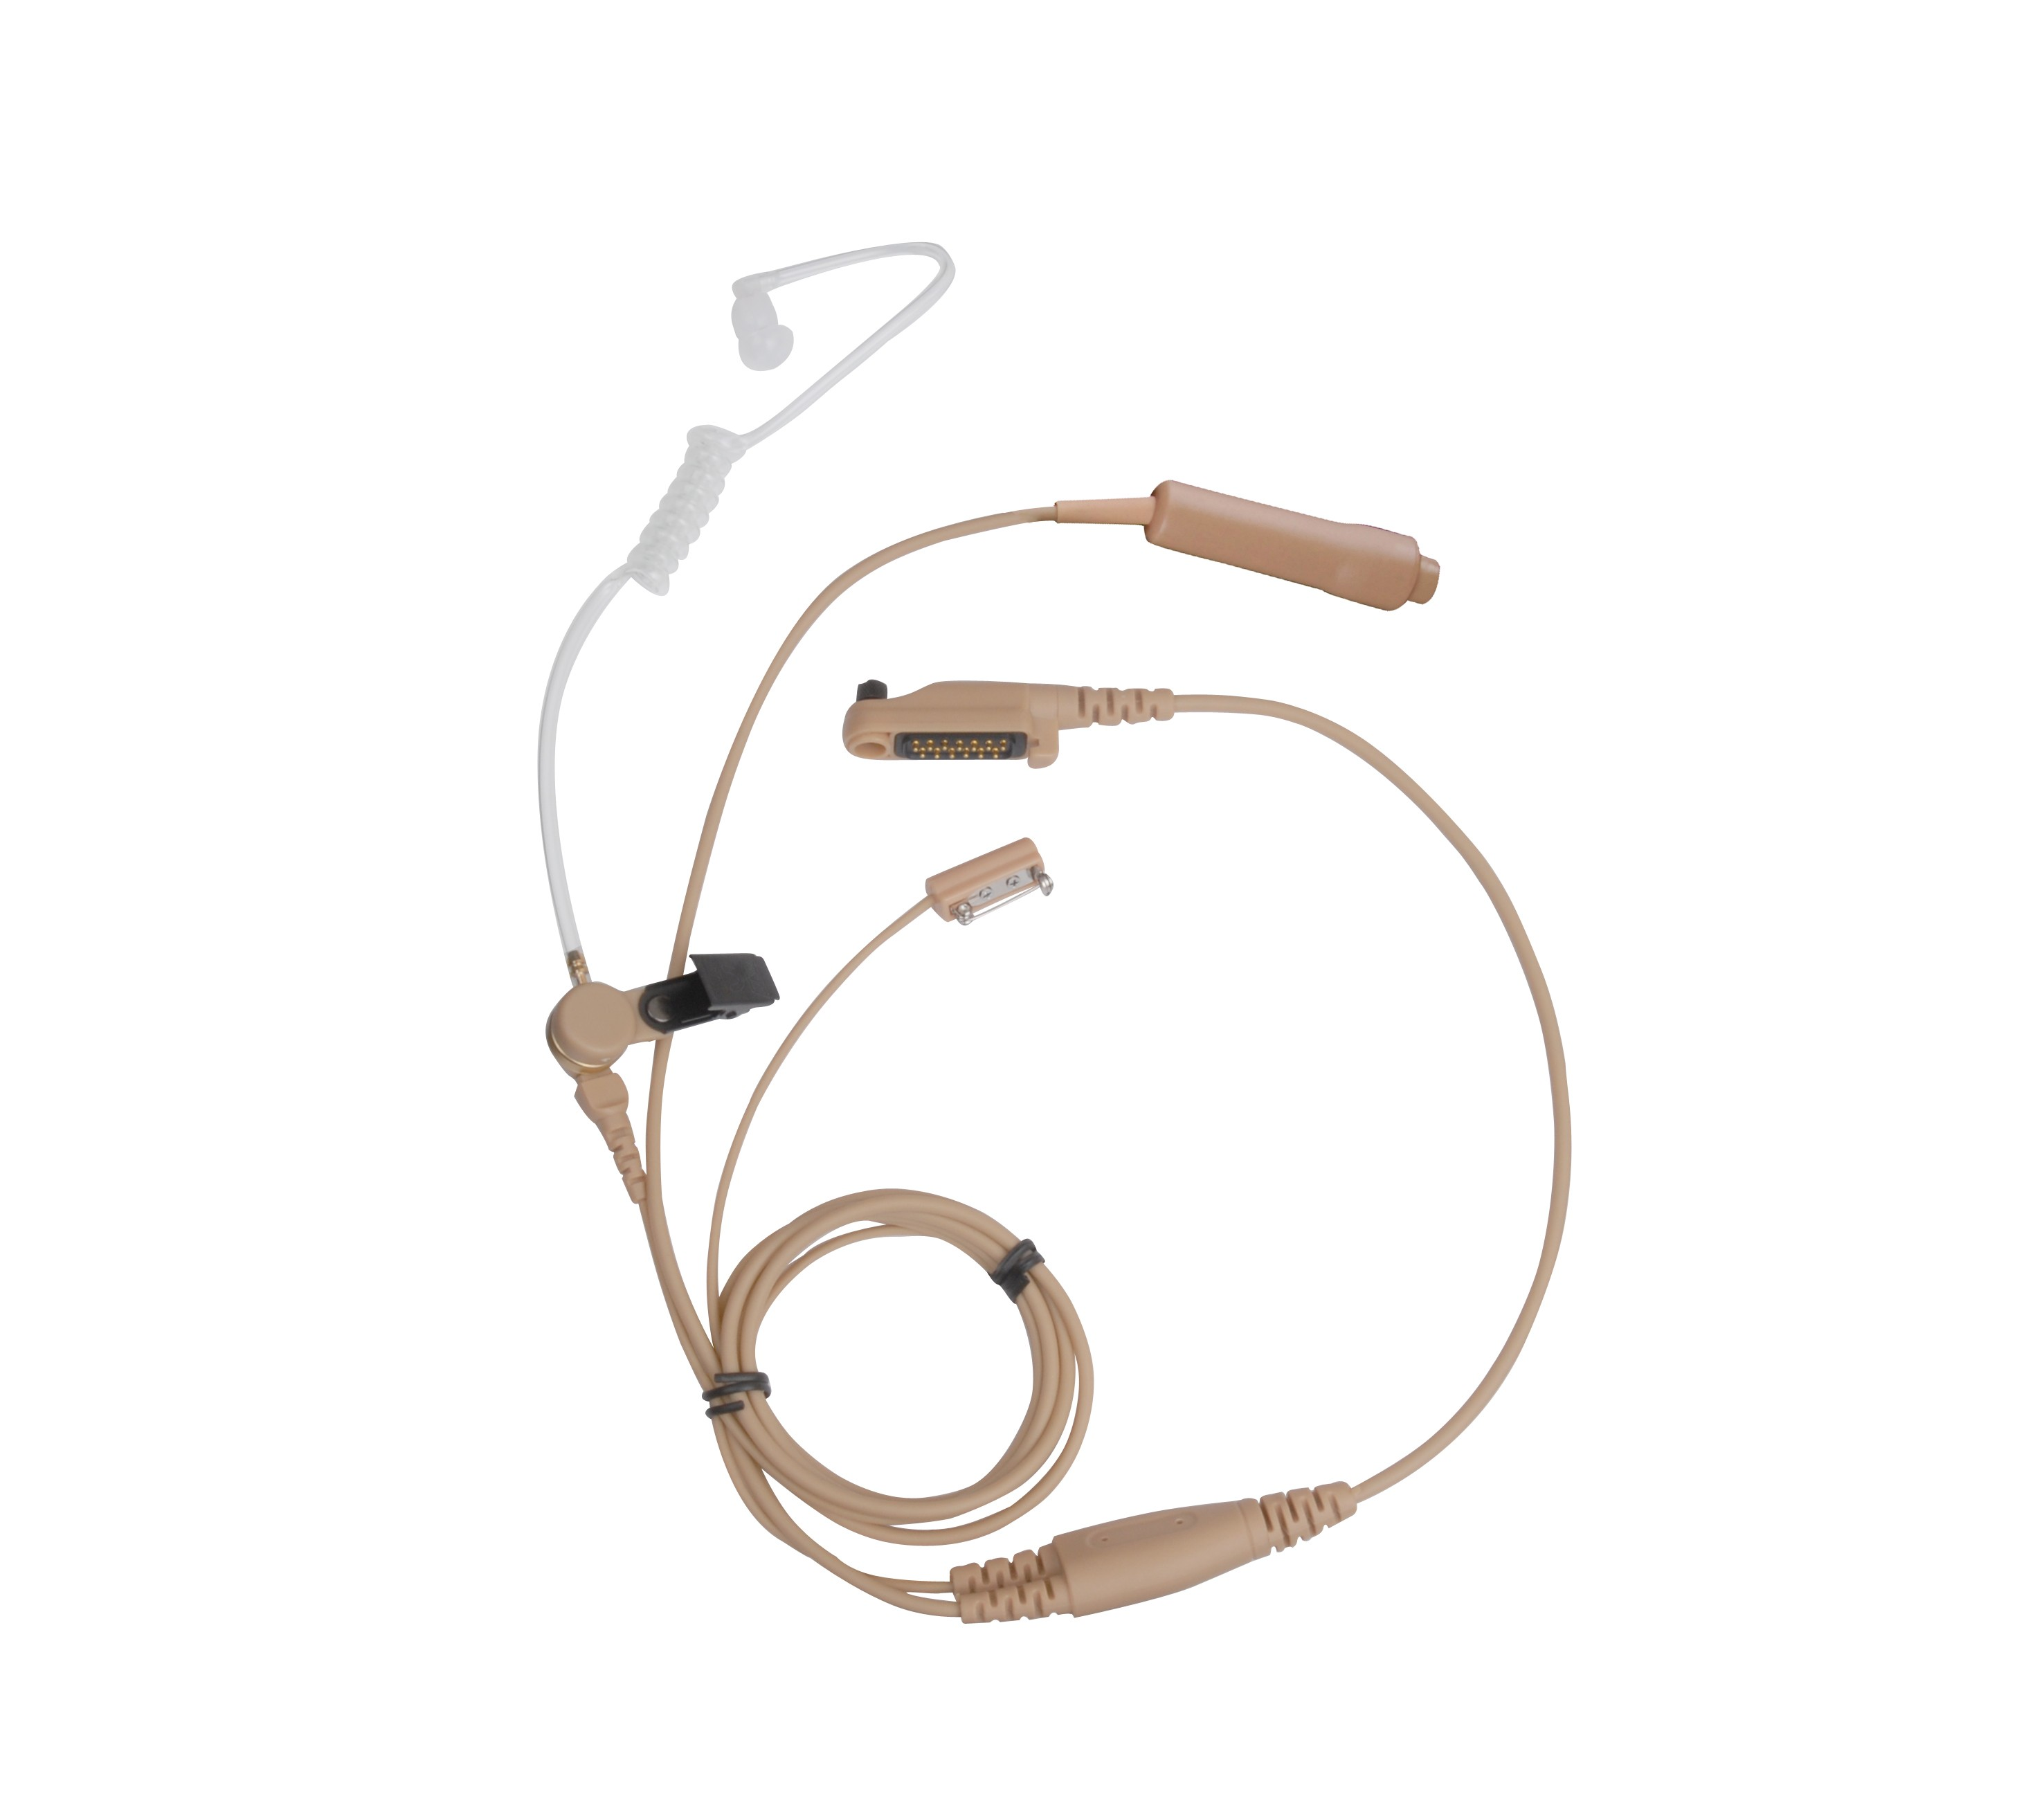 Hytera - 3-Wire Surveillance Earpiece